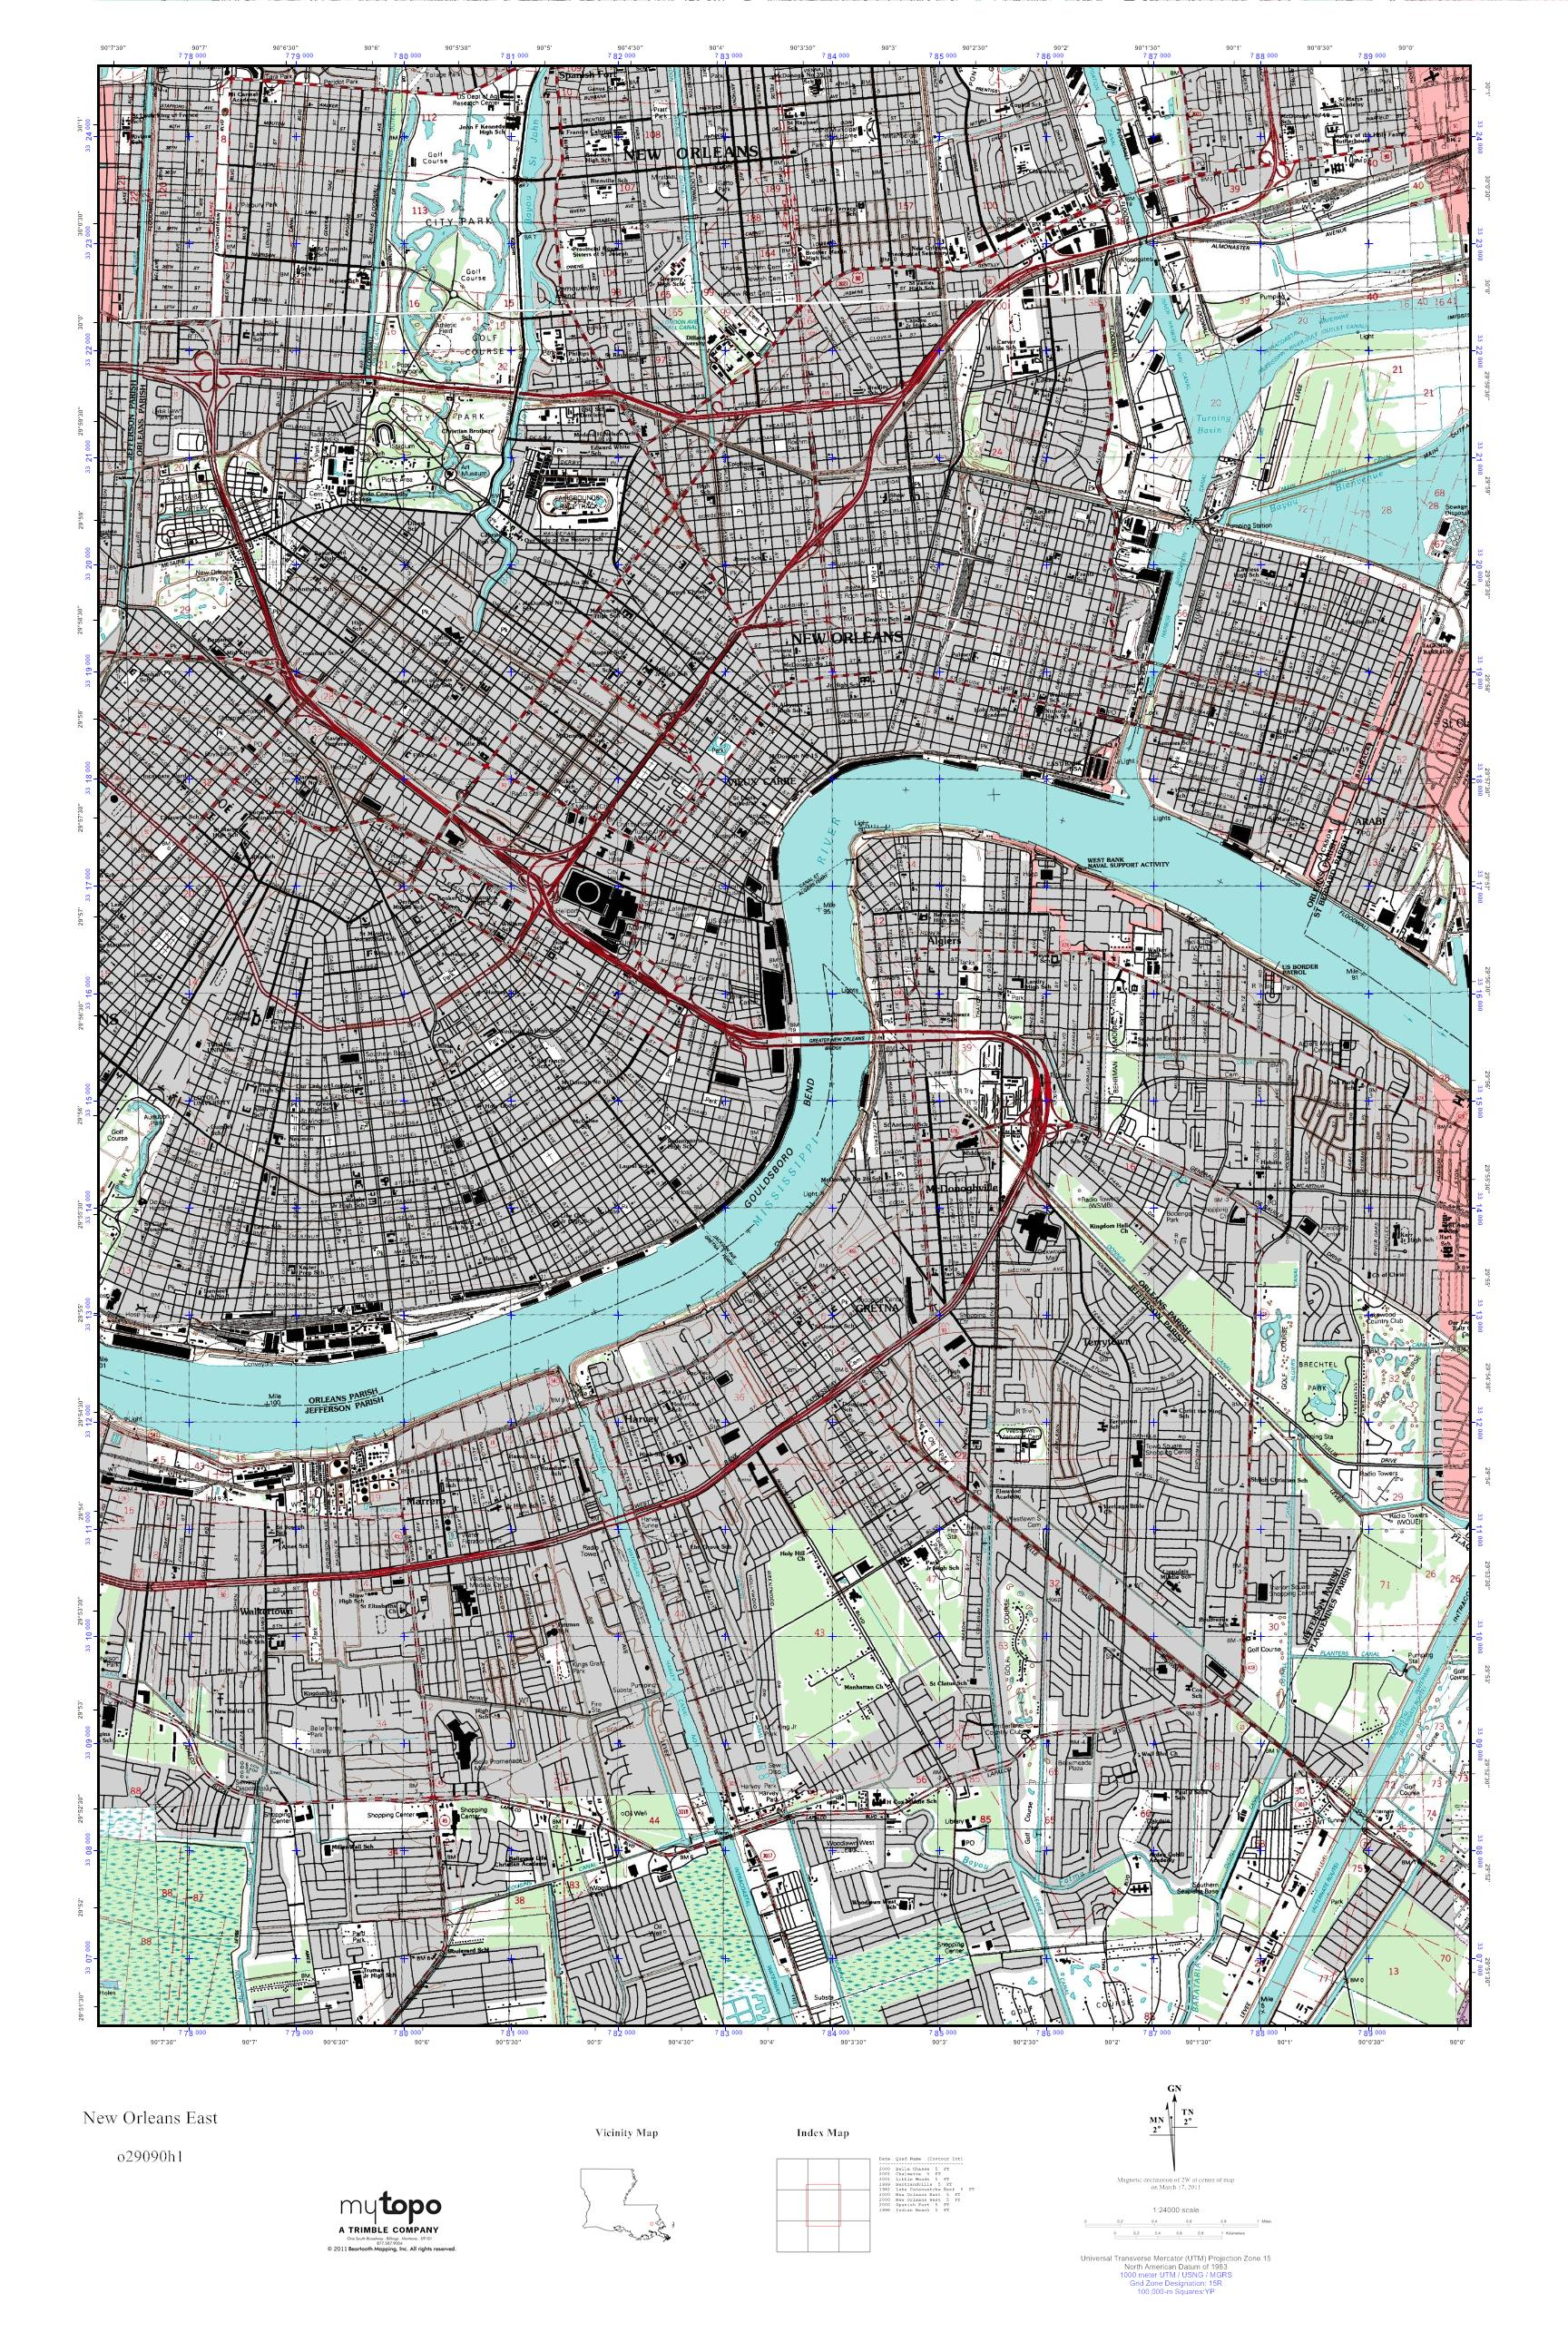 MyTopo New Orleans East, Louisiana USGS Quad Topo Map